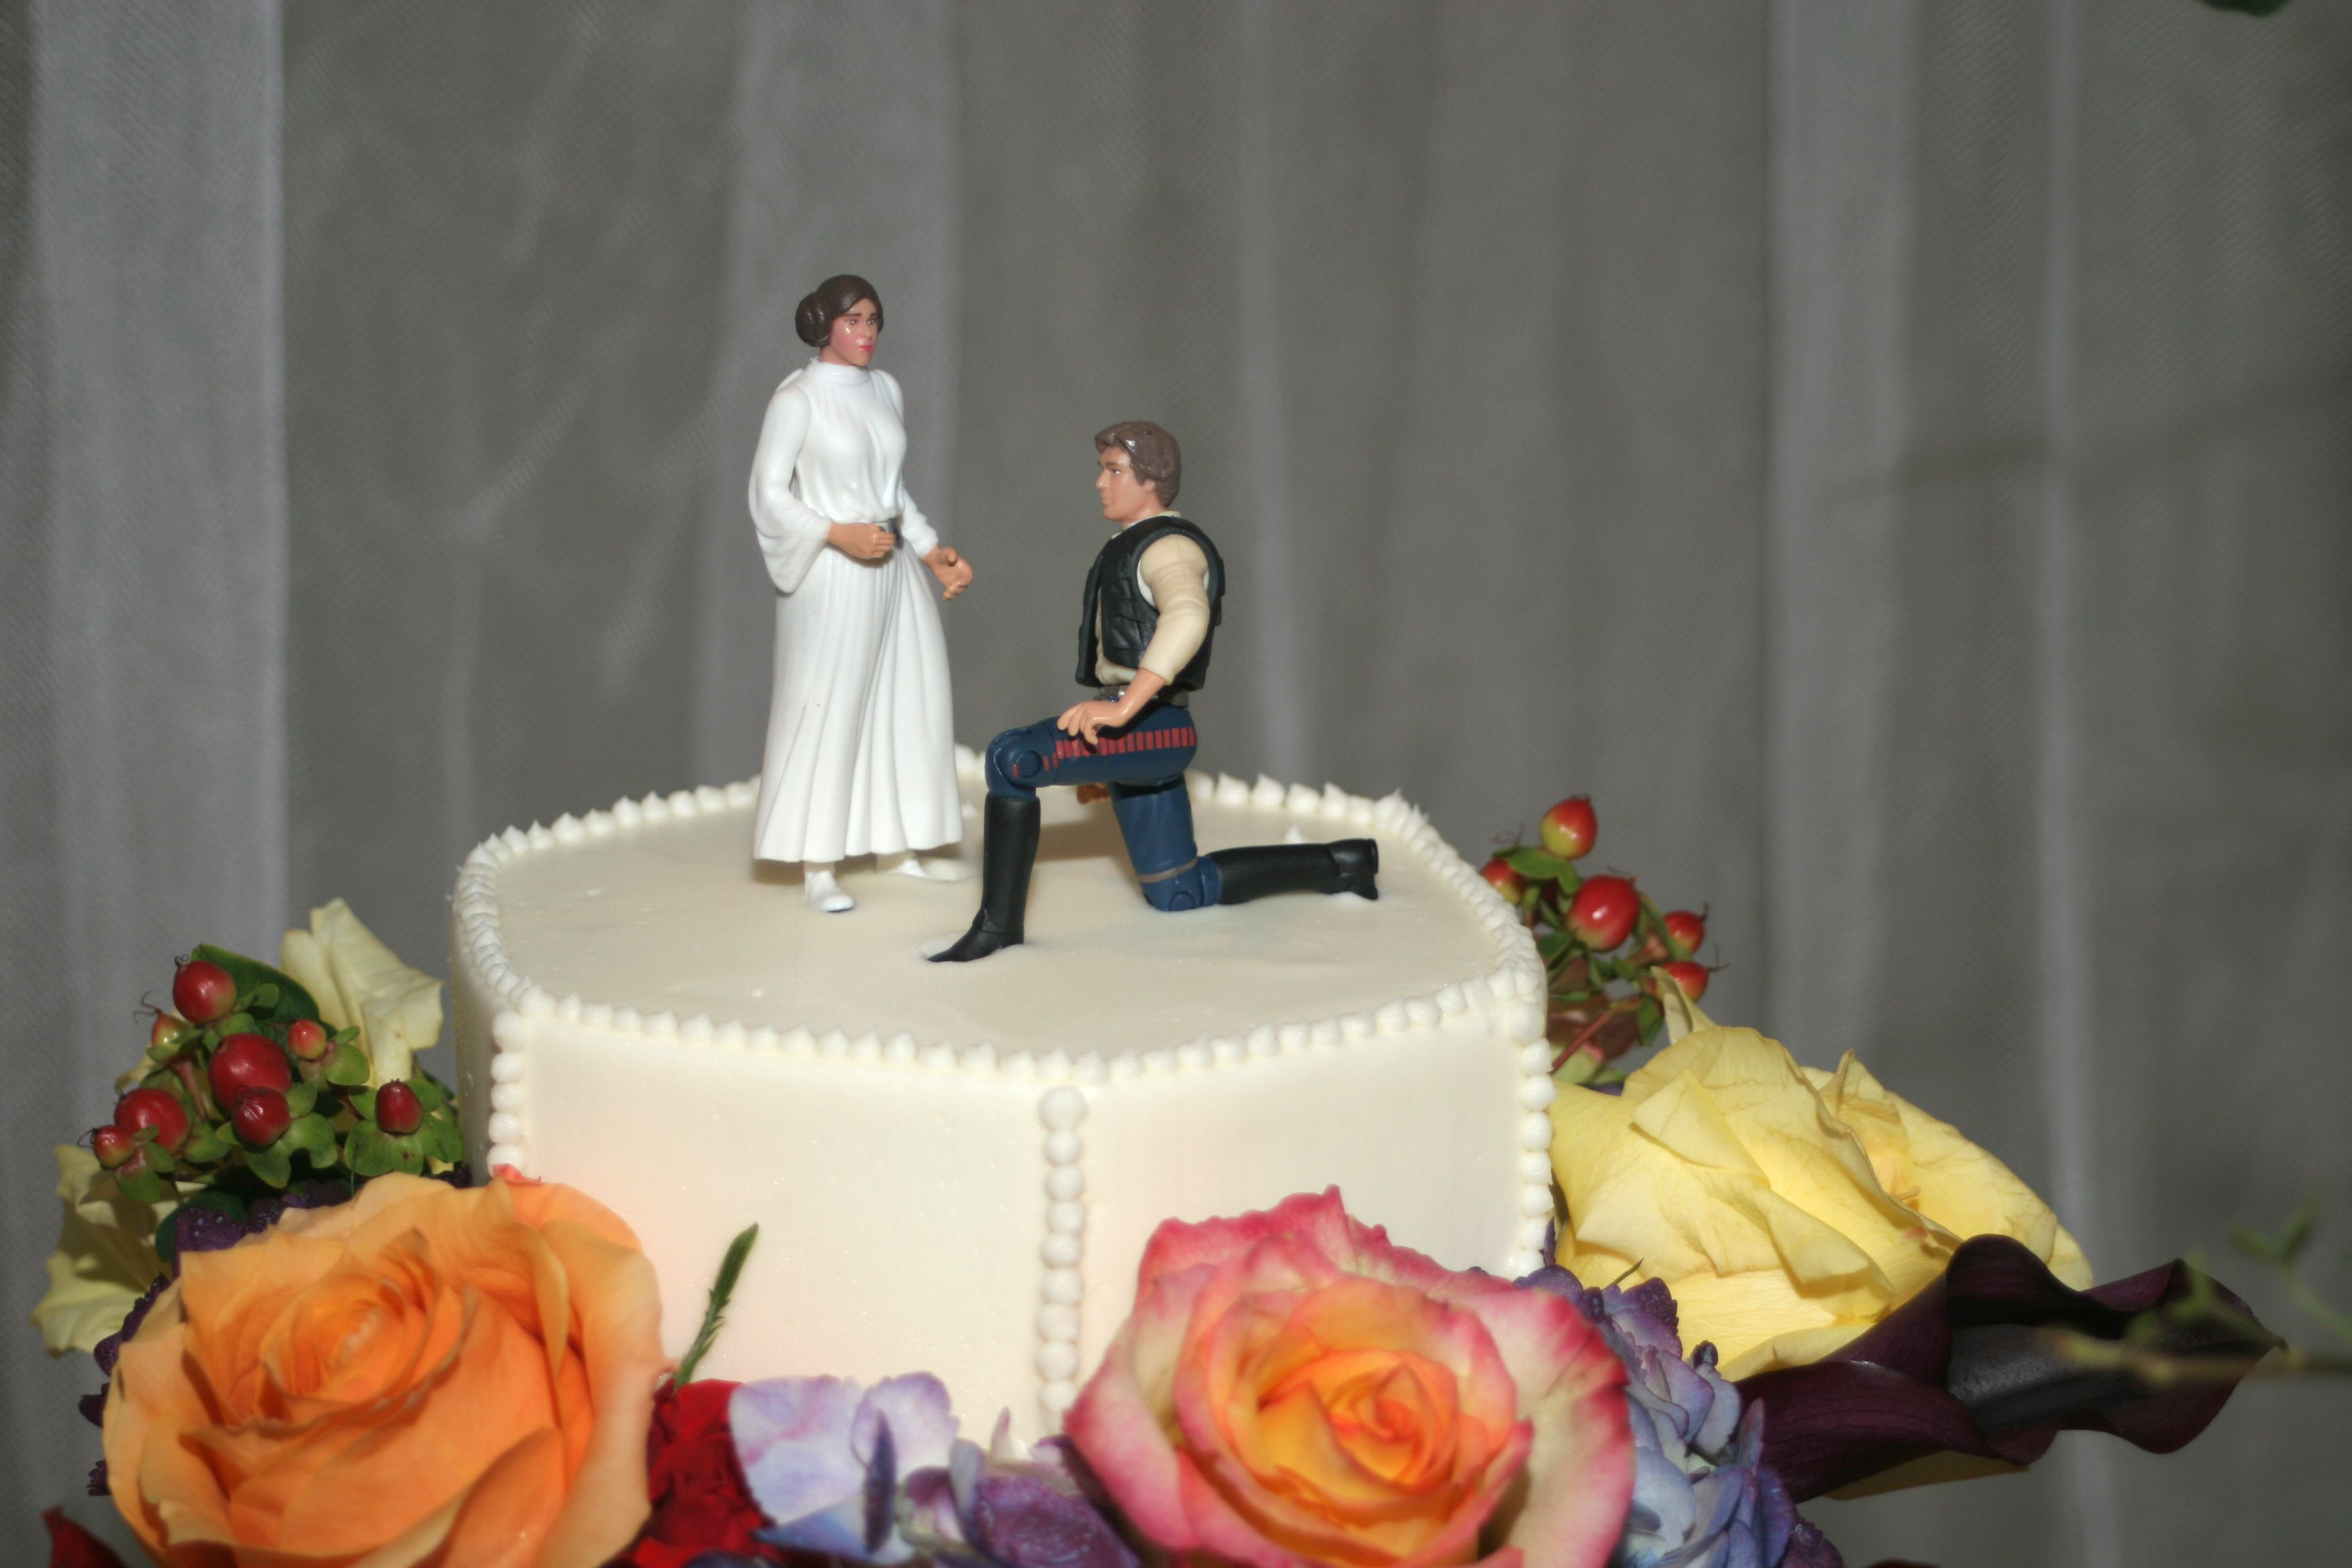 Action figure wedding cake toppers google search shannon action figure wedding cake toppers google search star wars junglespirit Gallery